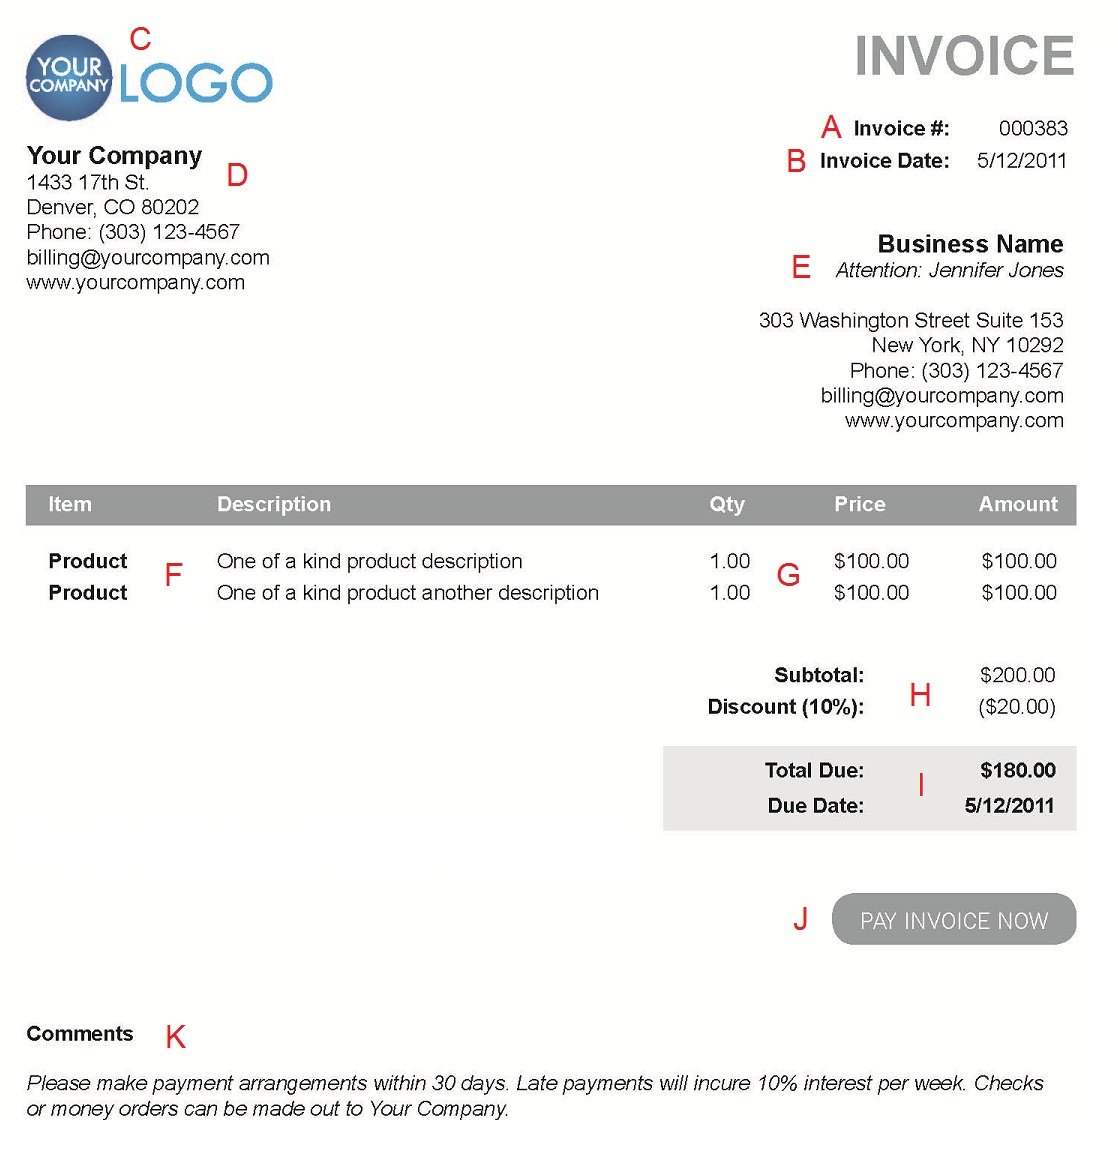 Floobydustus  Inspiring The  Different Sections Of An Electronic Payment Invoice With Remarkable A  With Agreeable Free Blank Rent Receipts Also Confirmation Of Payment Receipt In Addition Landlord Receipt For Rent And Receipt For Cake As Well As Example Receipt Template Additionally Car Sale Receipt Example From Paysimplecom With Floobydustus  Remarkable The  Different Sections Of An Electronic Payment Invoice With Agreeable A  And Inspiring Free Blank Rent Receipts Also Confirmation Of Payment Receipt In Addition Landlord Receipt For Rent From Paysimplecom